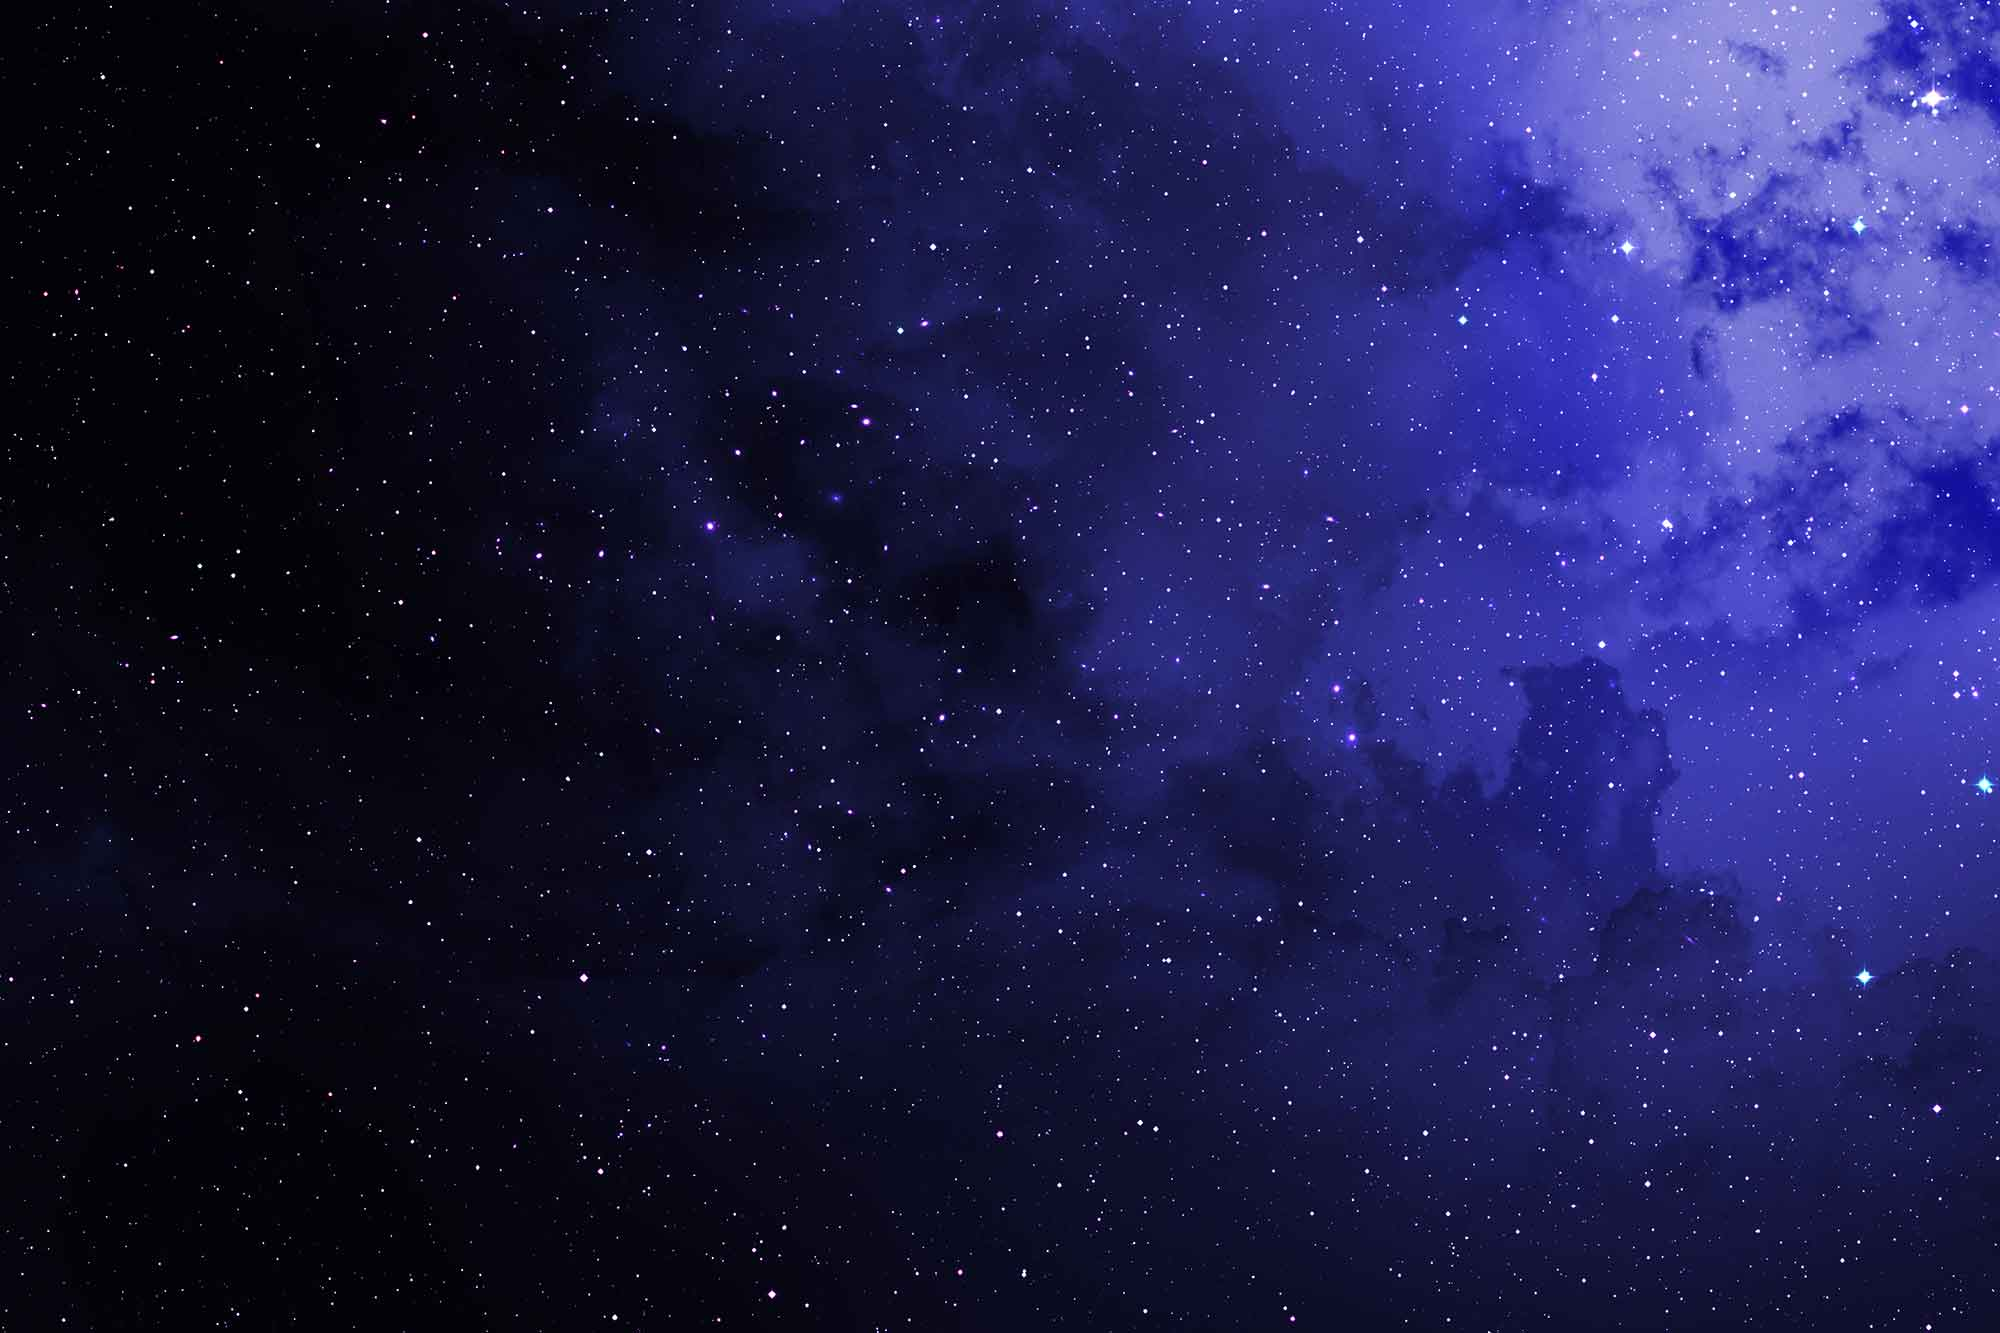 Space Background Image 4